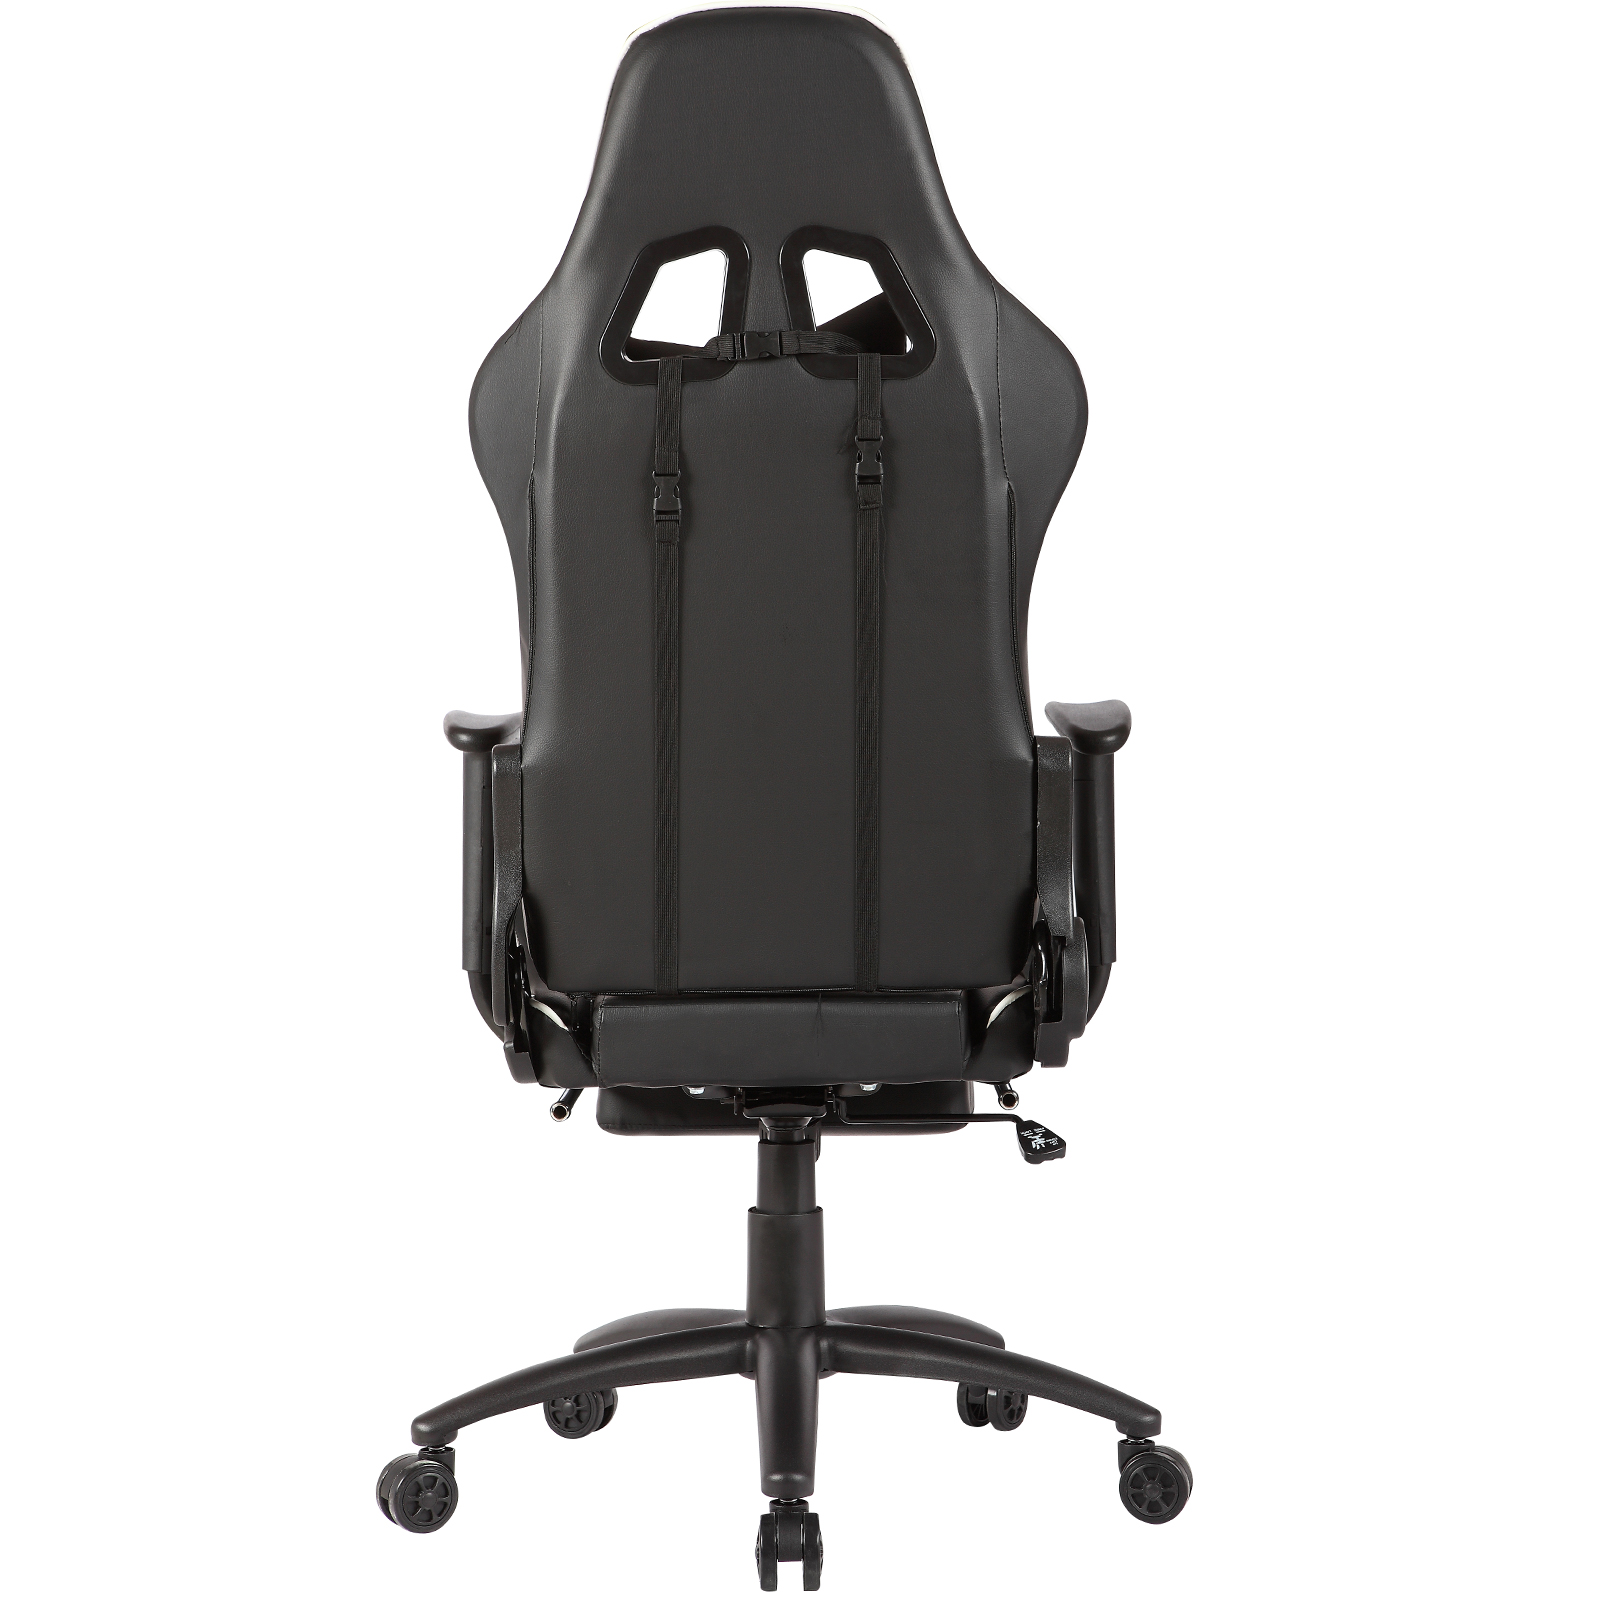 x rocker desk chair bedroom lounge office gaming racing seats computer executive